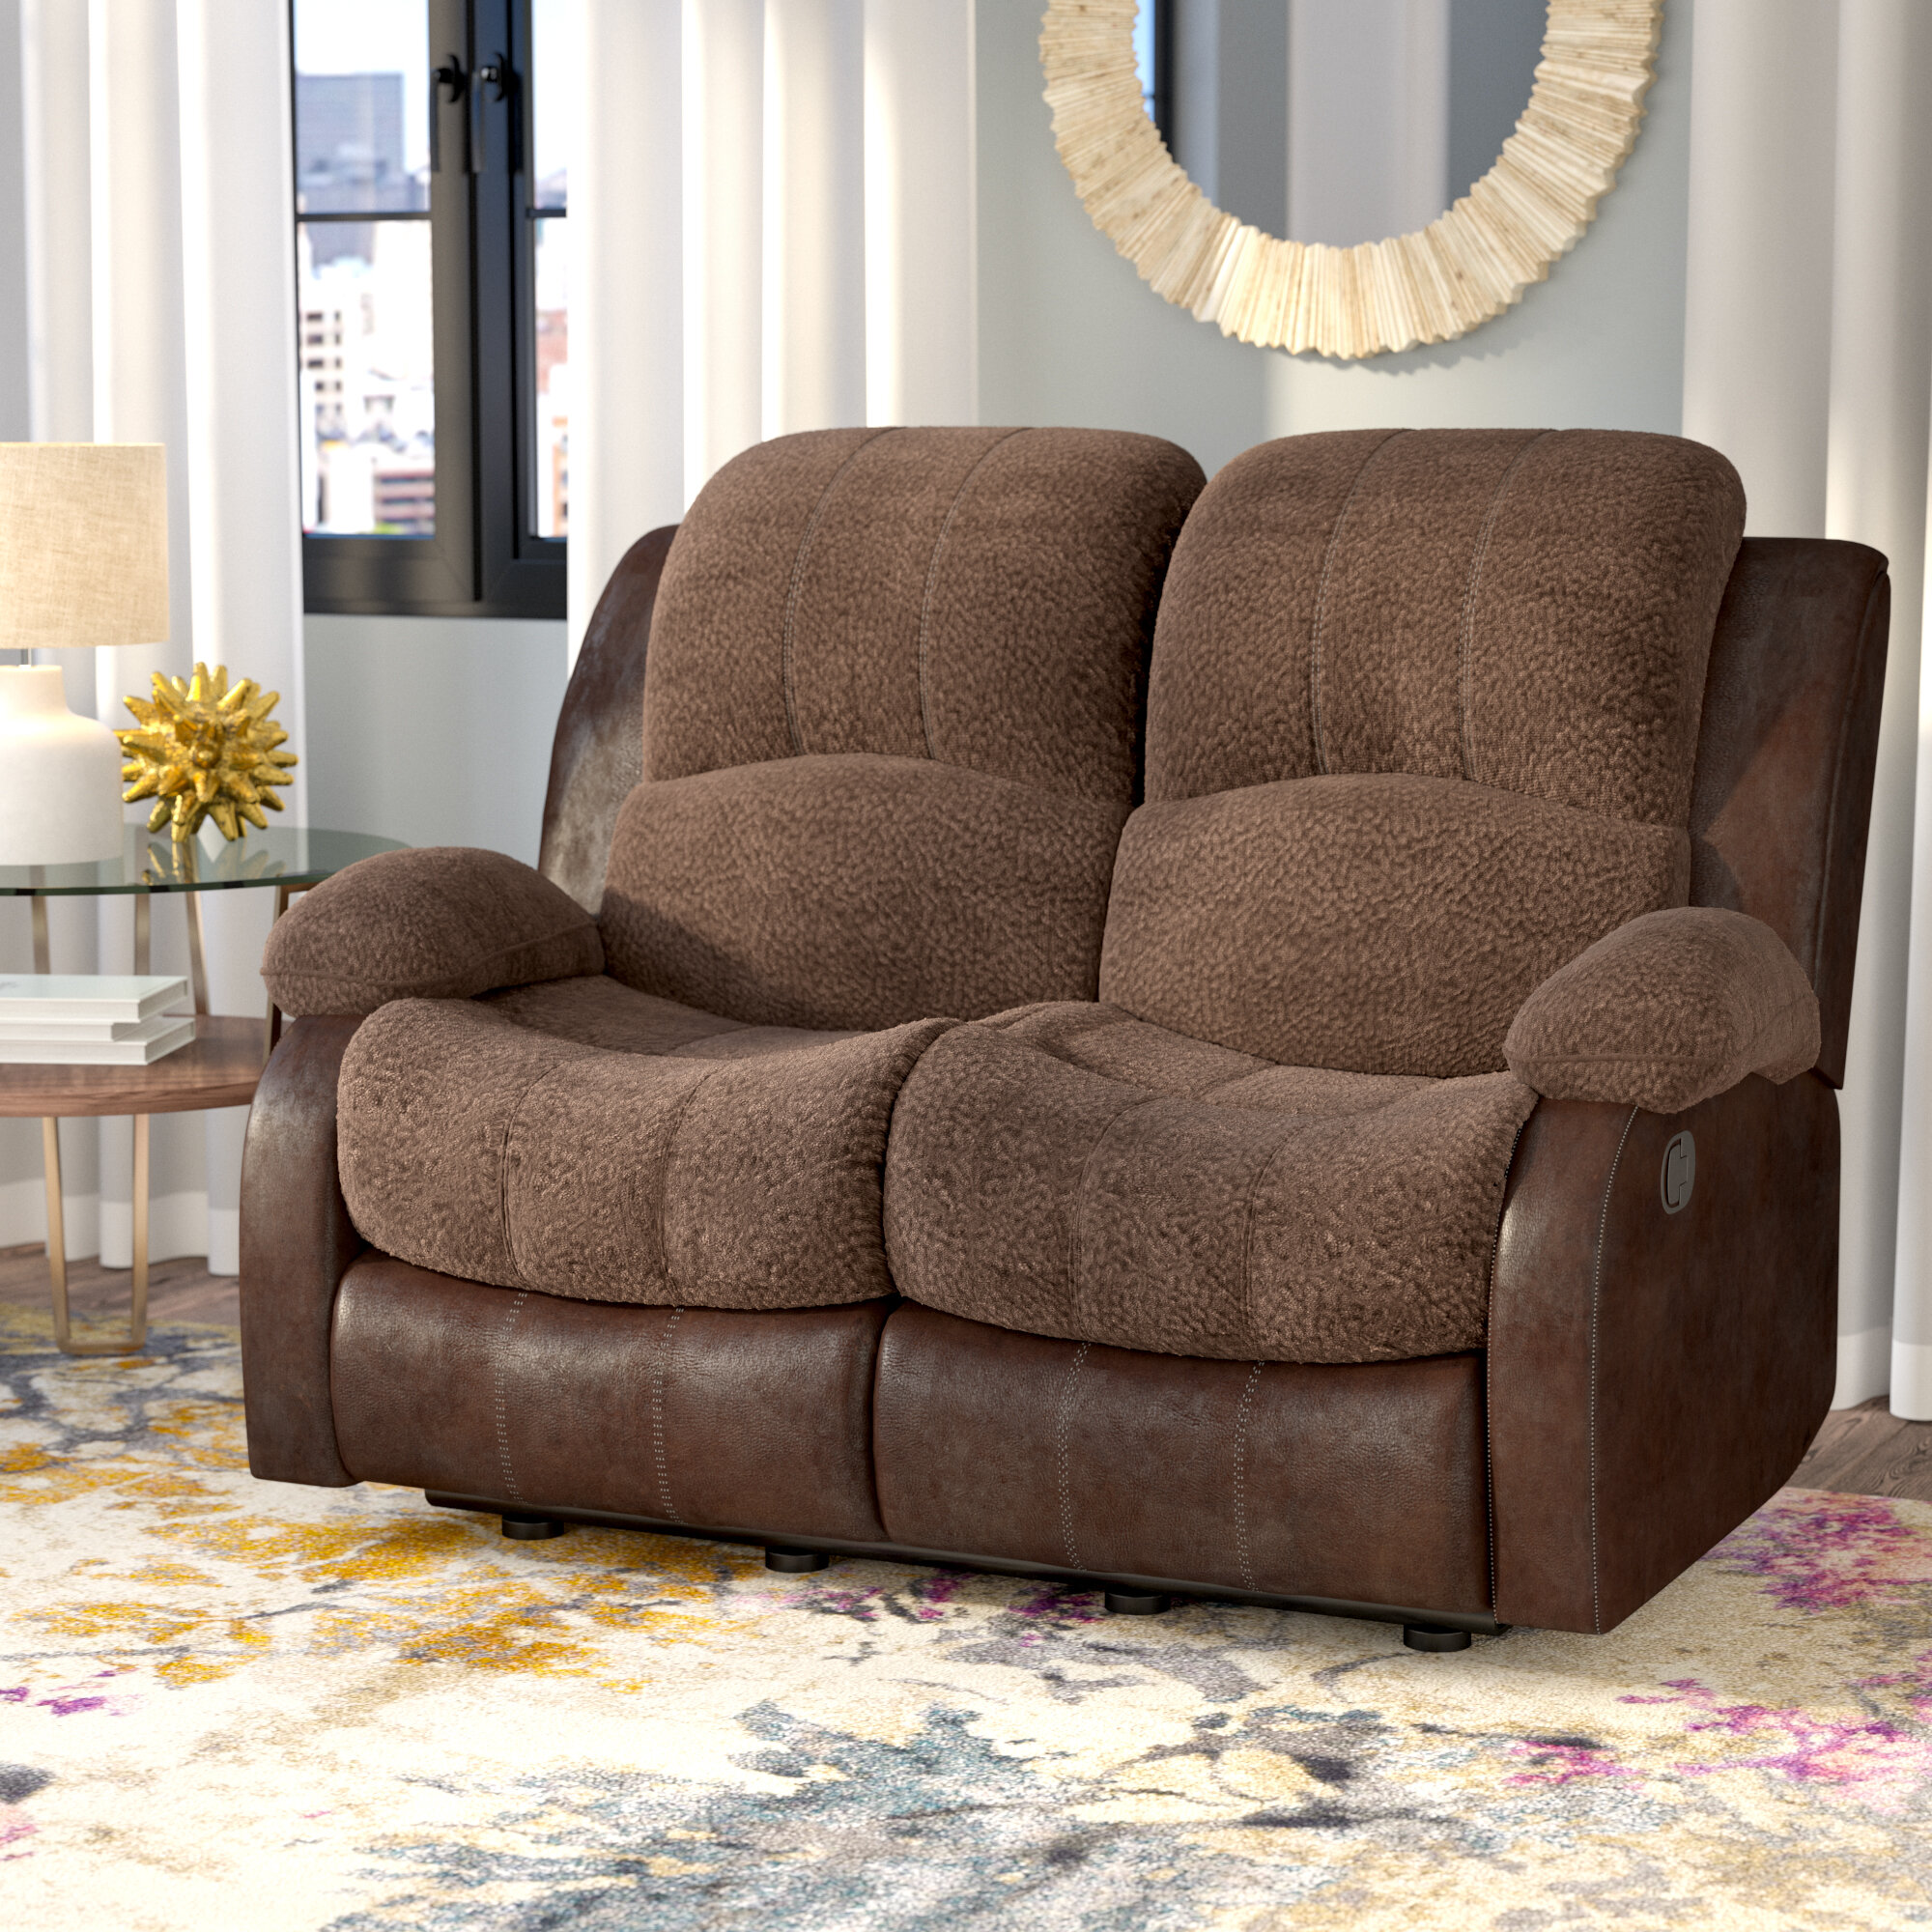 with reclining height products threshold double recliner width showcase item southern pwr showcasedouble loveseat trim motion headrest